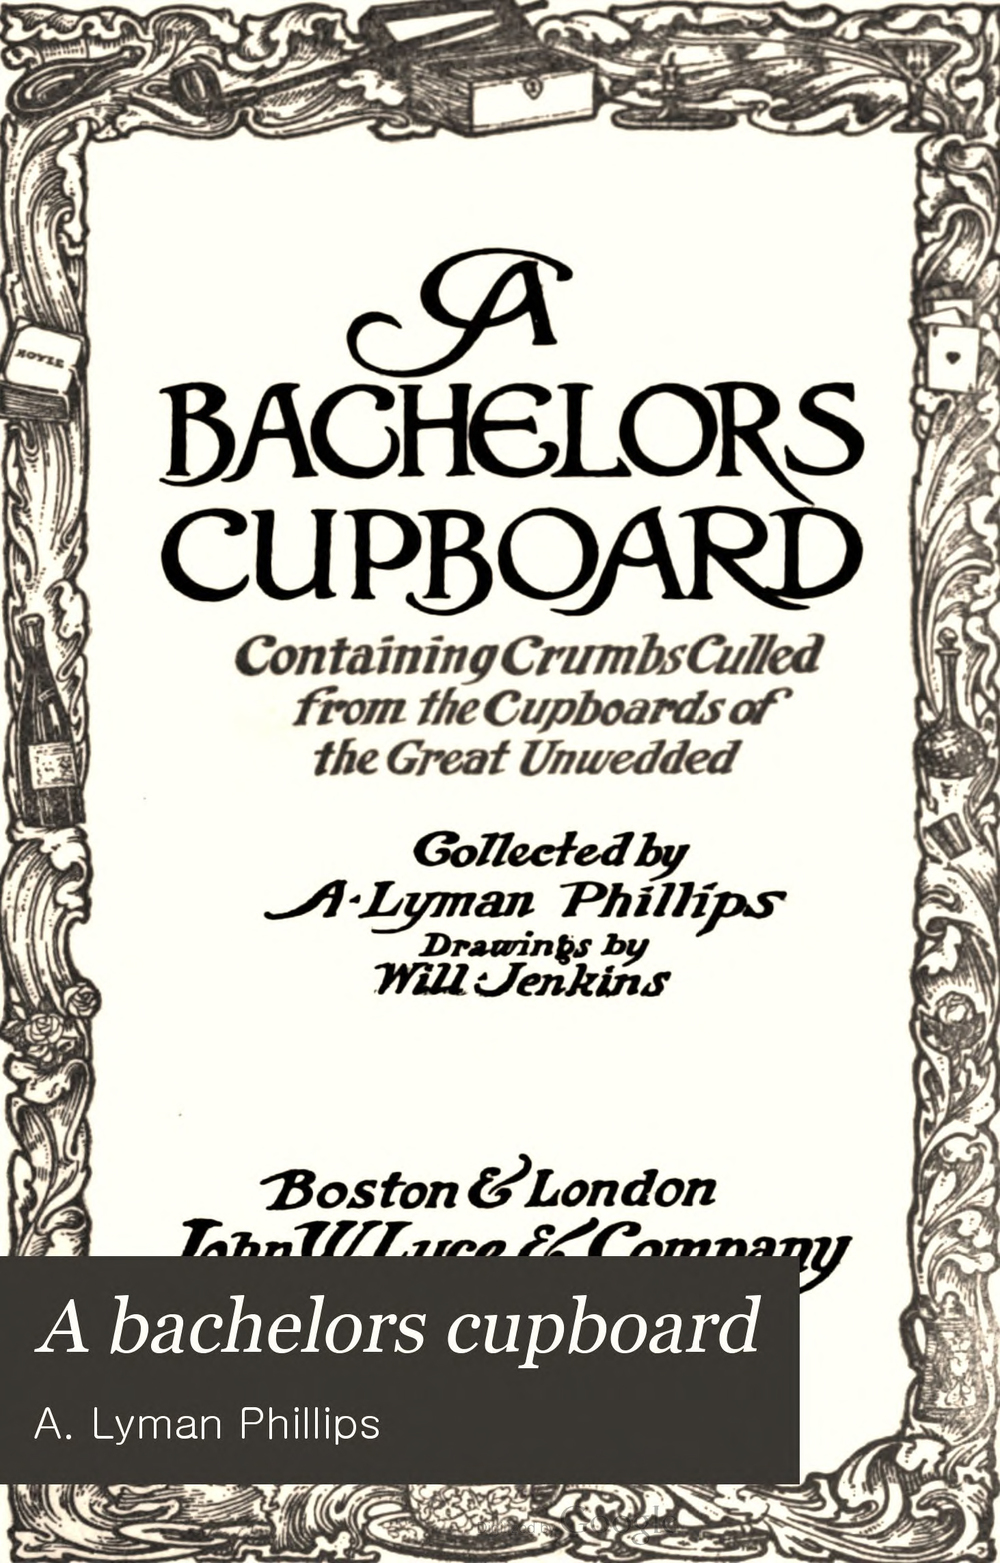 A_Bachelors_Cupboard-2.jpg